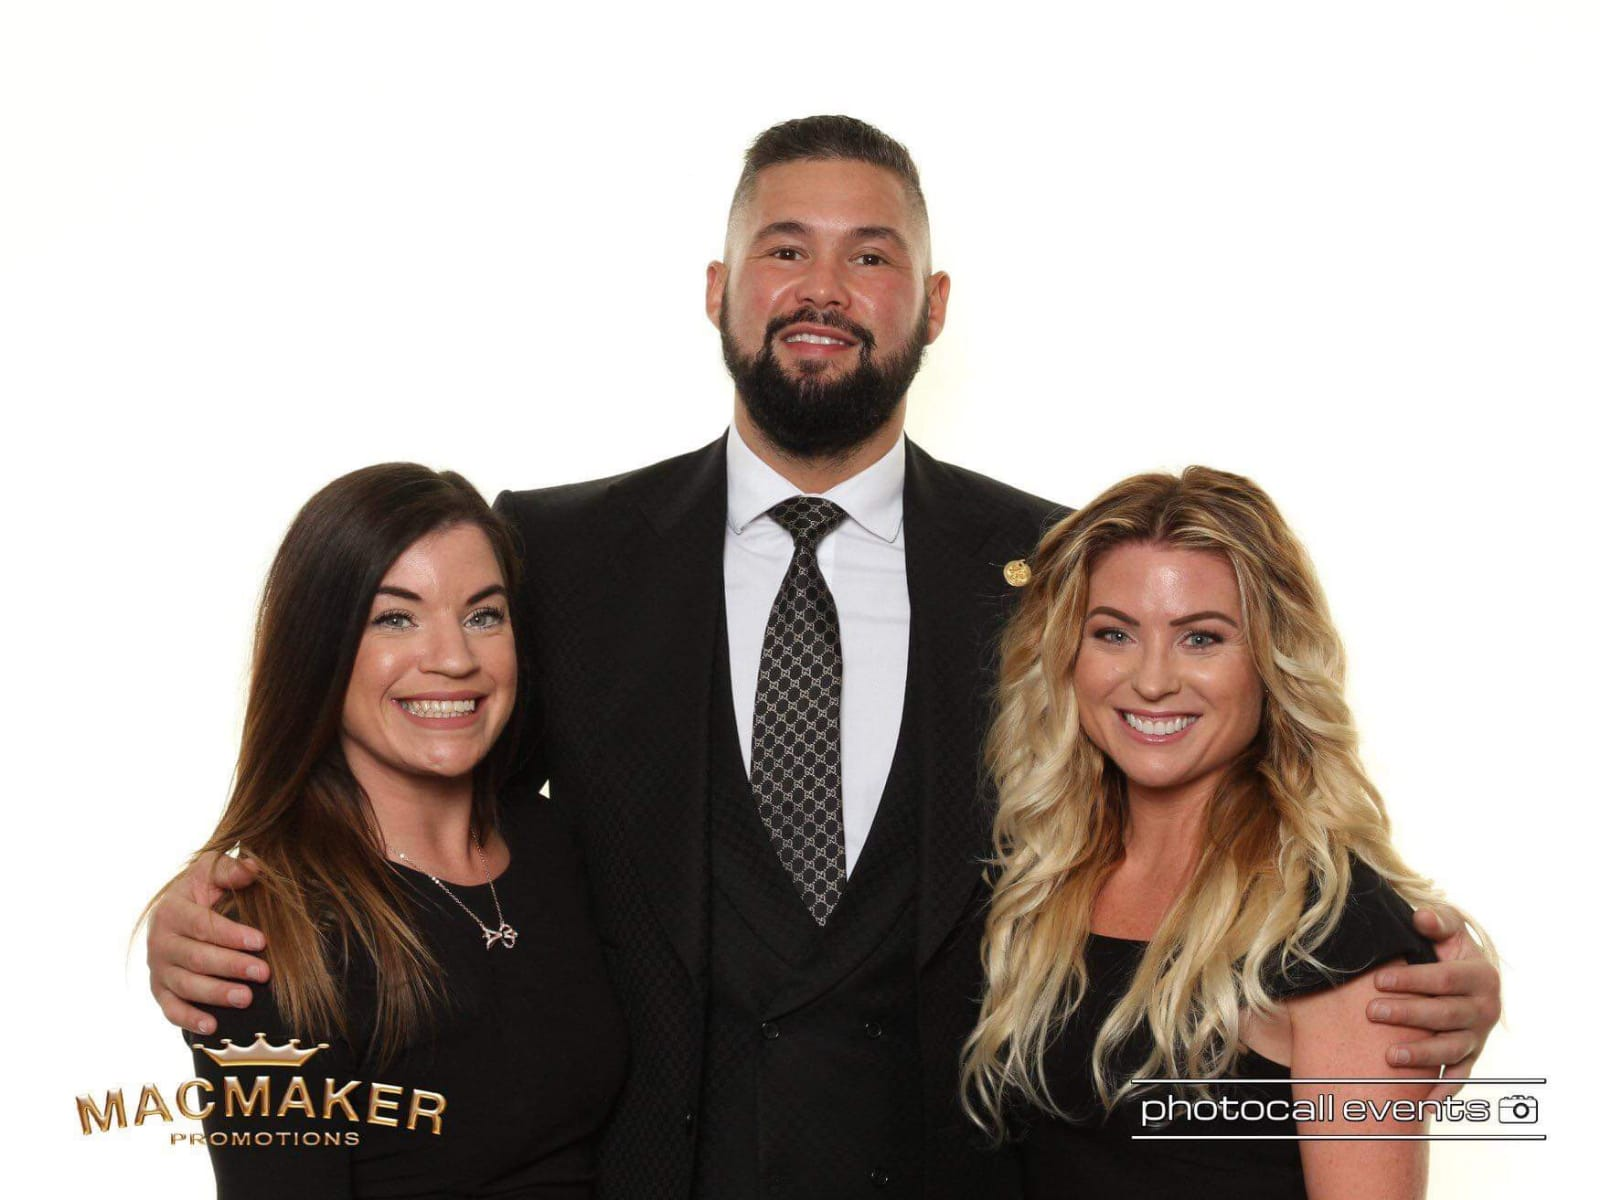 Melissa and Sarah with Tony Bellew